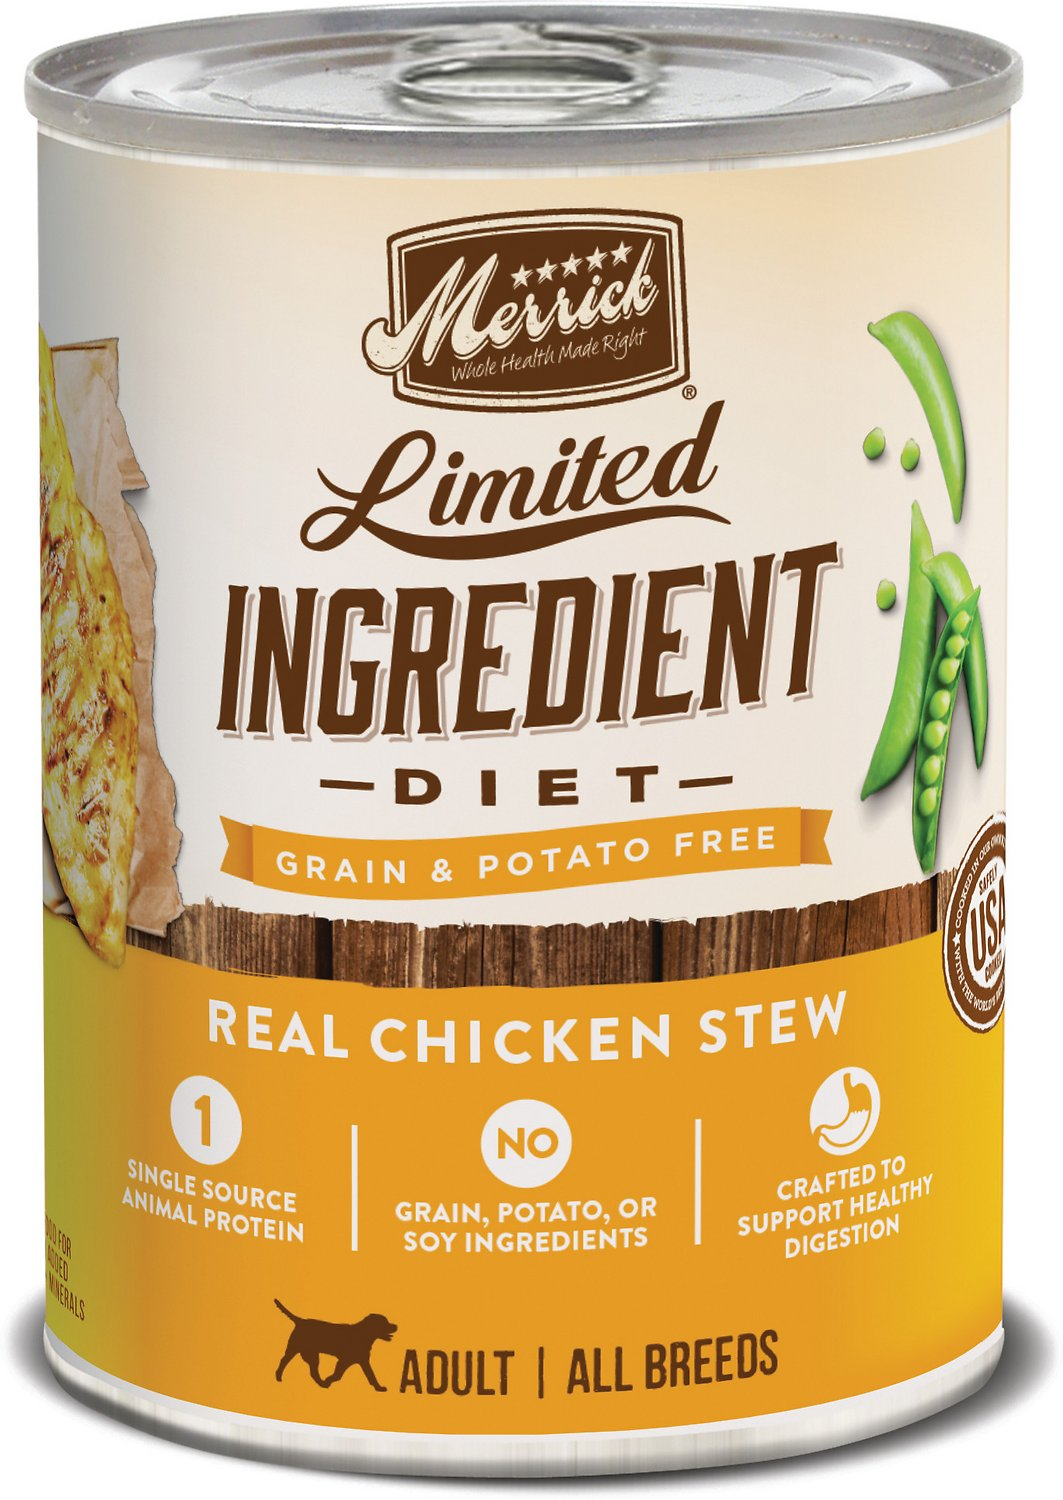 have the limited ingredient diets changes merrick